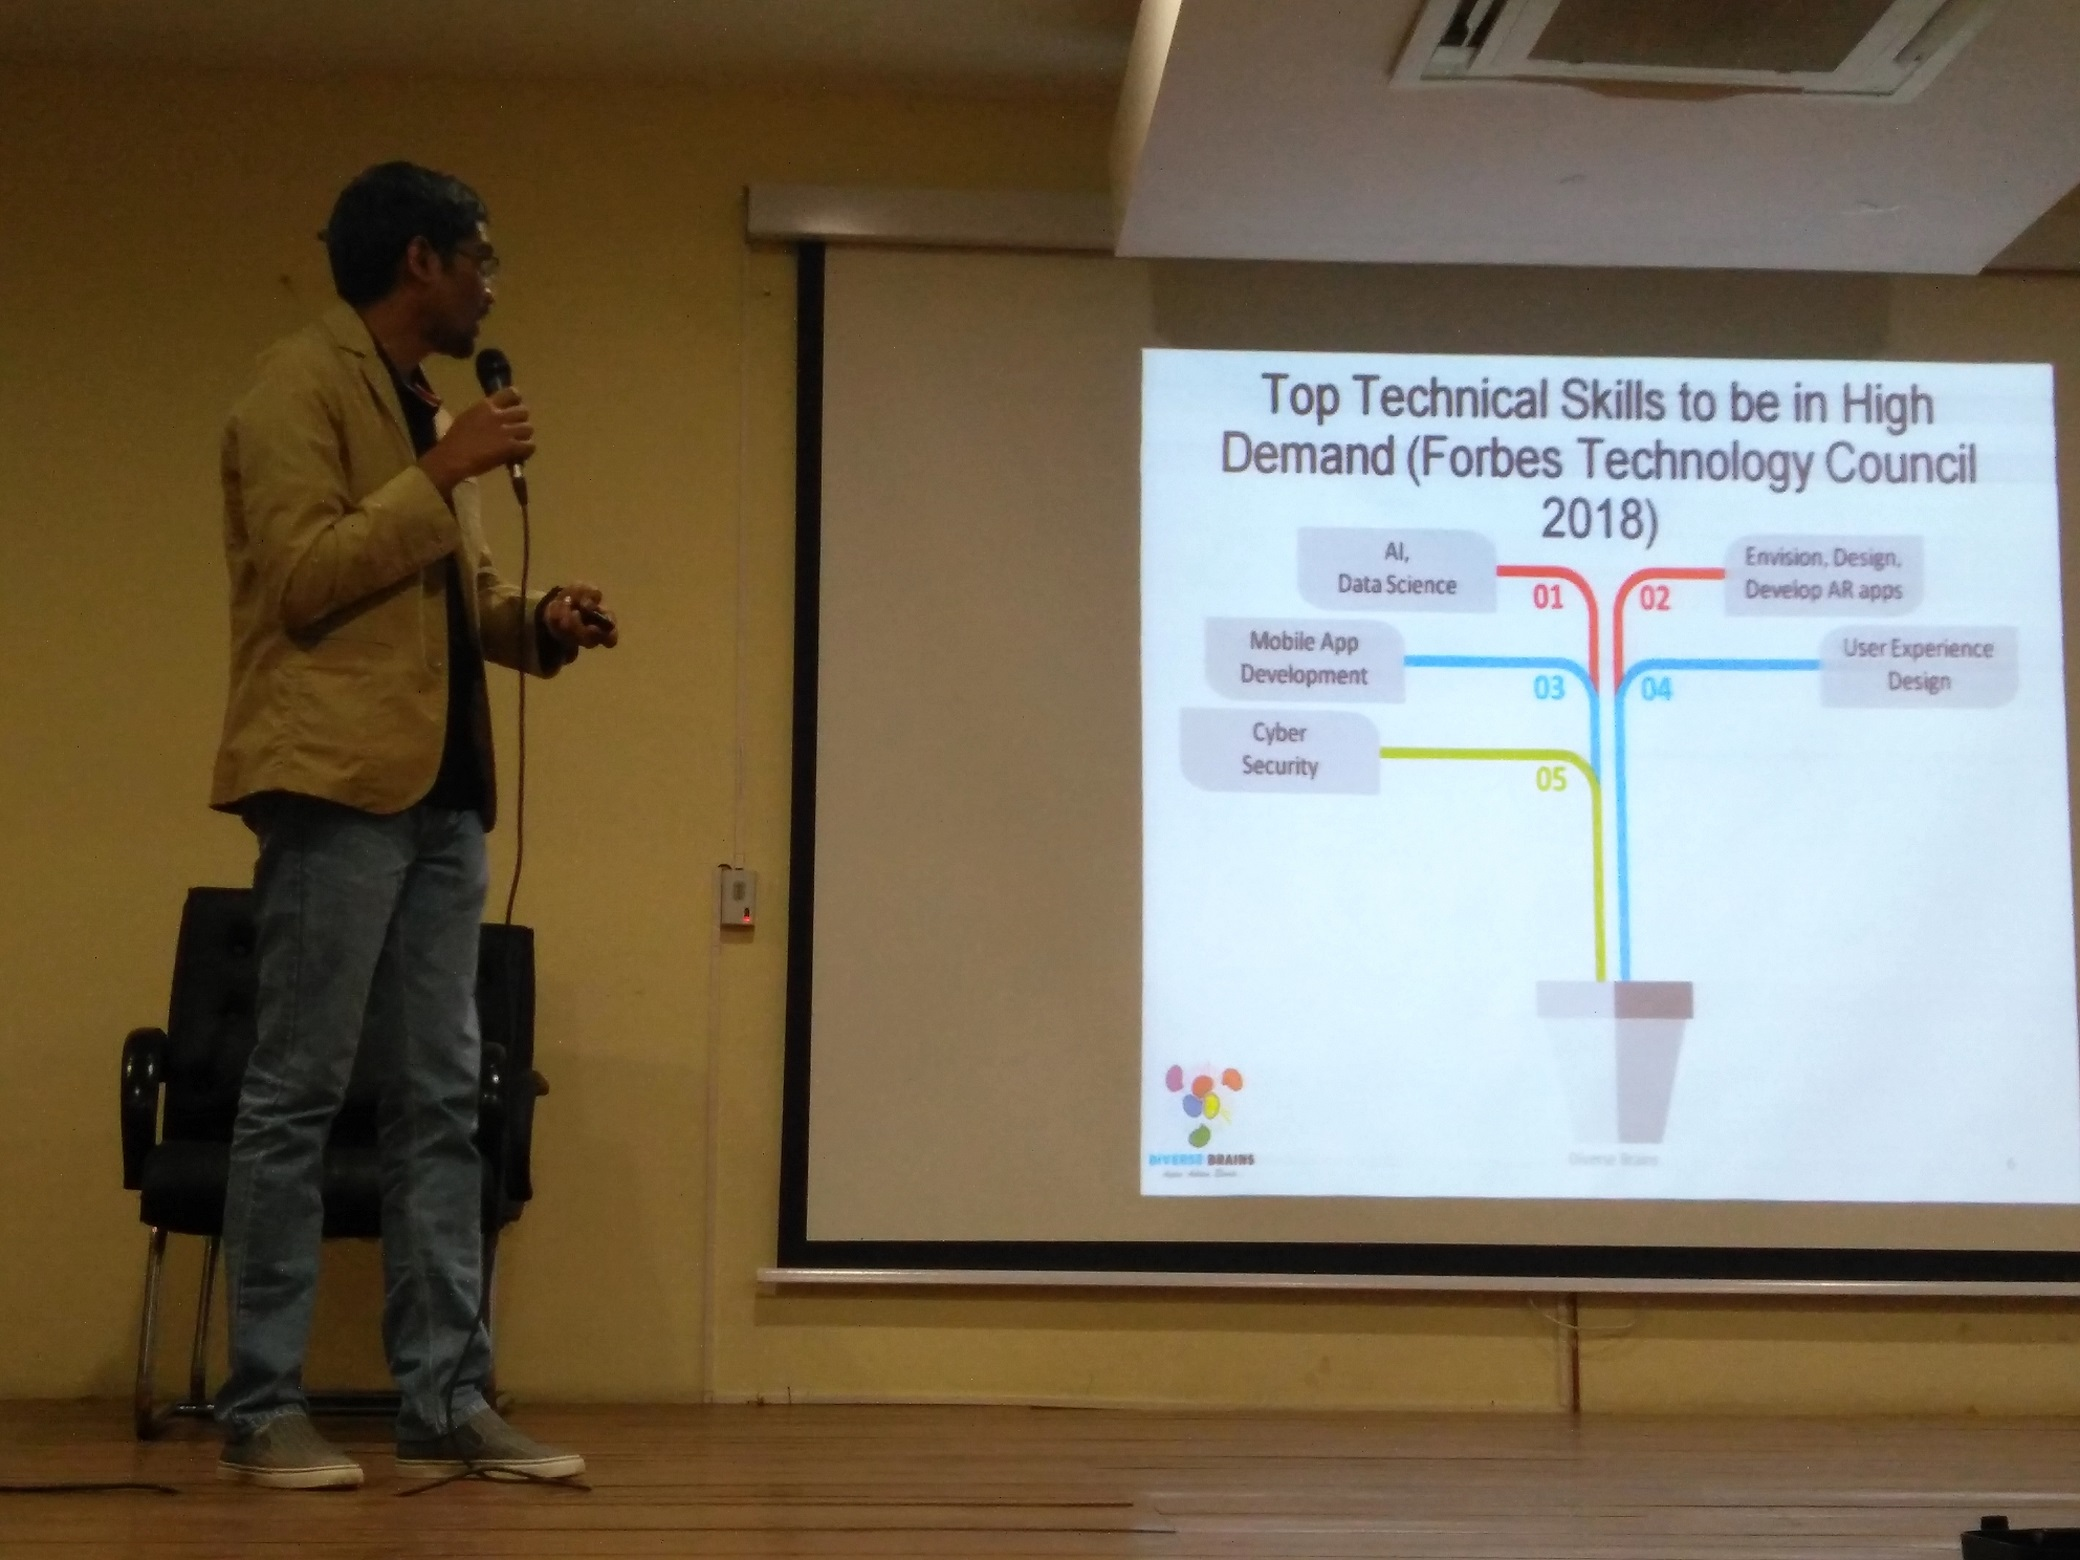 Ananth Sivagnanam sharing about Top Technical Skills in High Demand as listed by Forbes Technology Council 2018